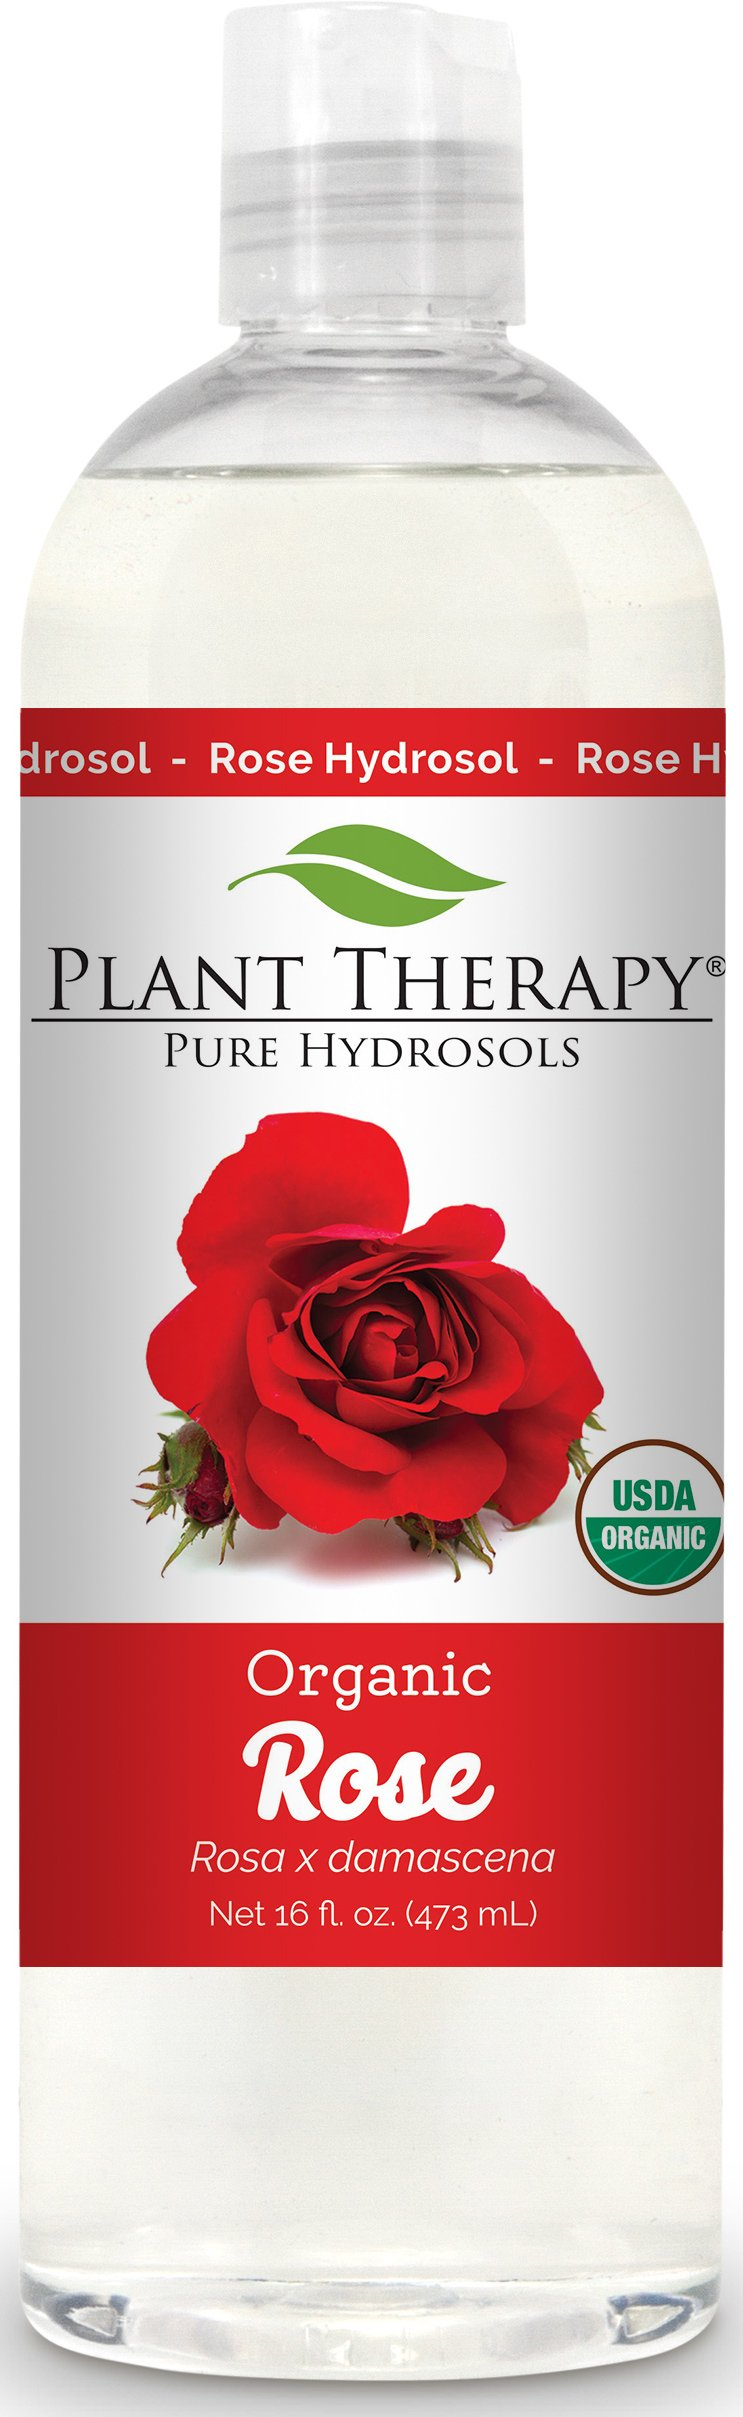 Plant Therapy Rose Organic Hydrosol 16 oz By-Product of Essential Oils by Plant Therapy